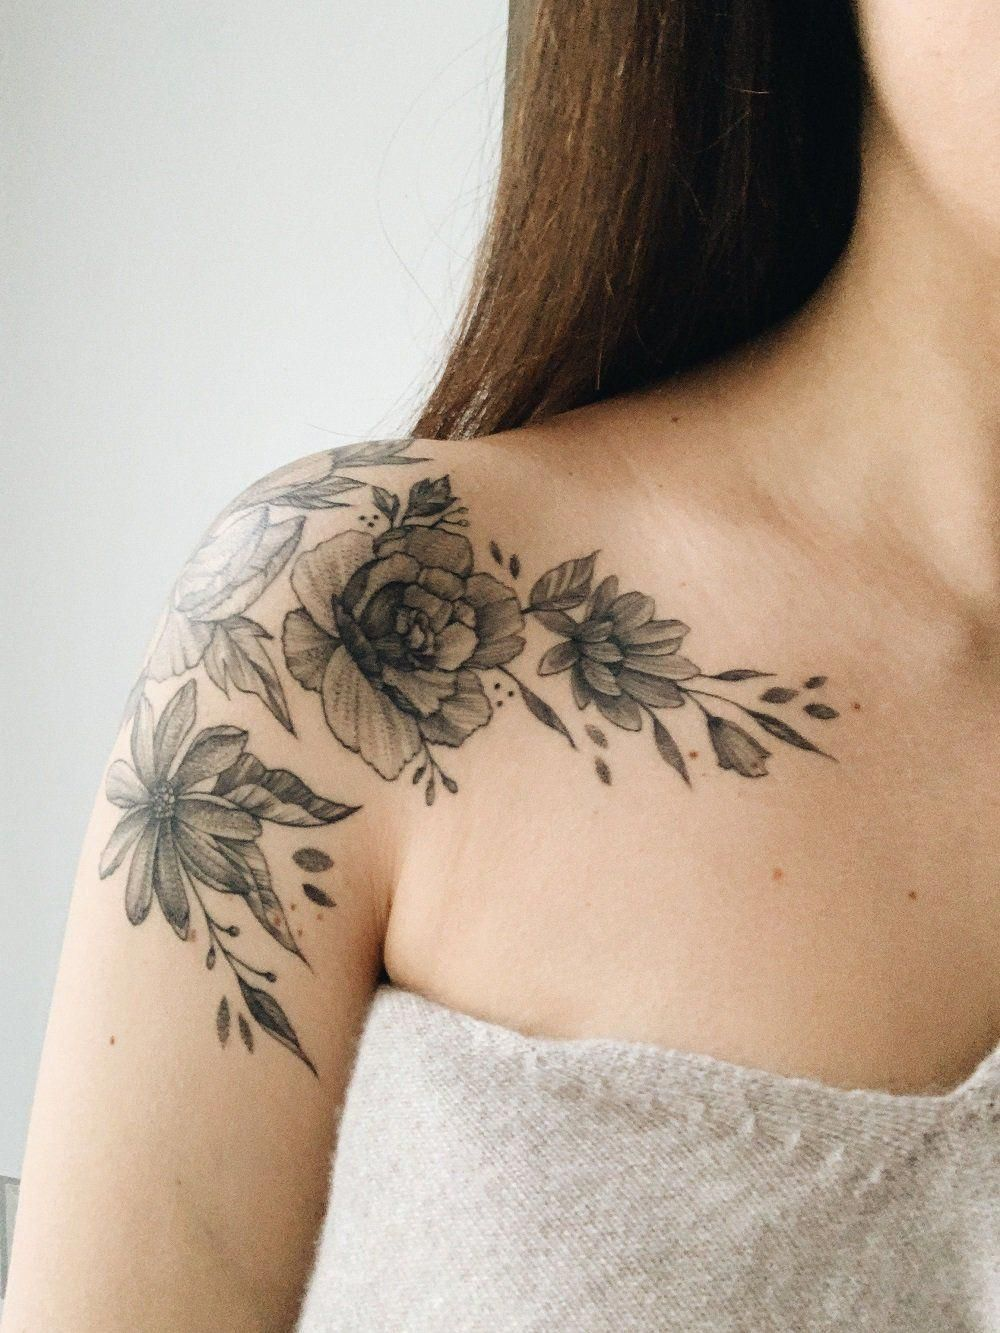 This Amazing Chest Tattoo Is Certainly An Inspirational And Top Notch Idea Chesttattoo In 2020 Tattoos Floral Tattoo Shoulder Chest Tattoo